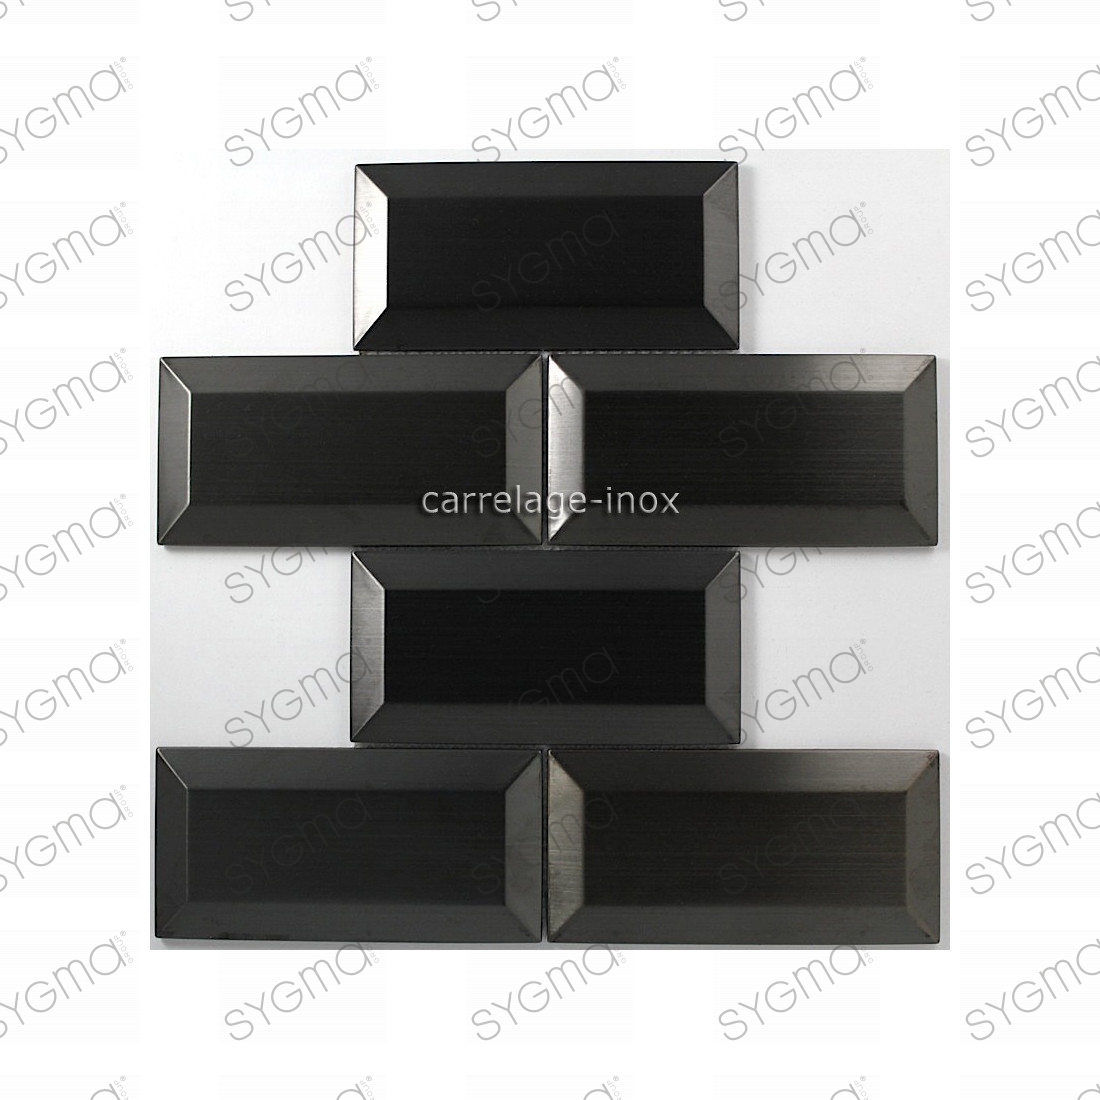 carrelage inox 1m2 mosa que inox cuisine cr dence metro noir carrelage. Black Bedroom Furniture Sets. Home Design Ideas